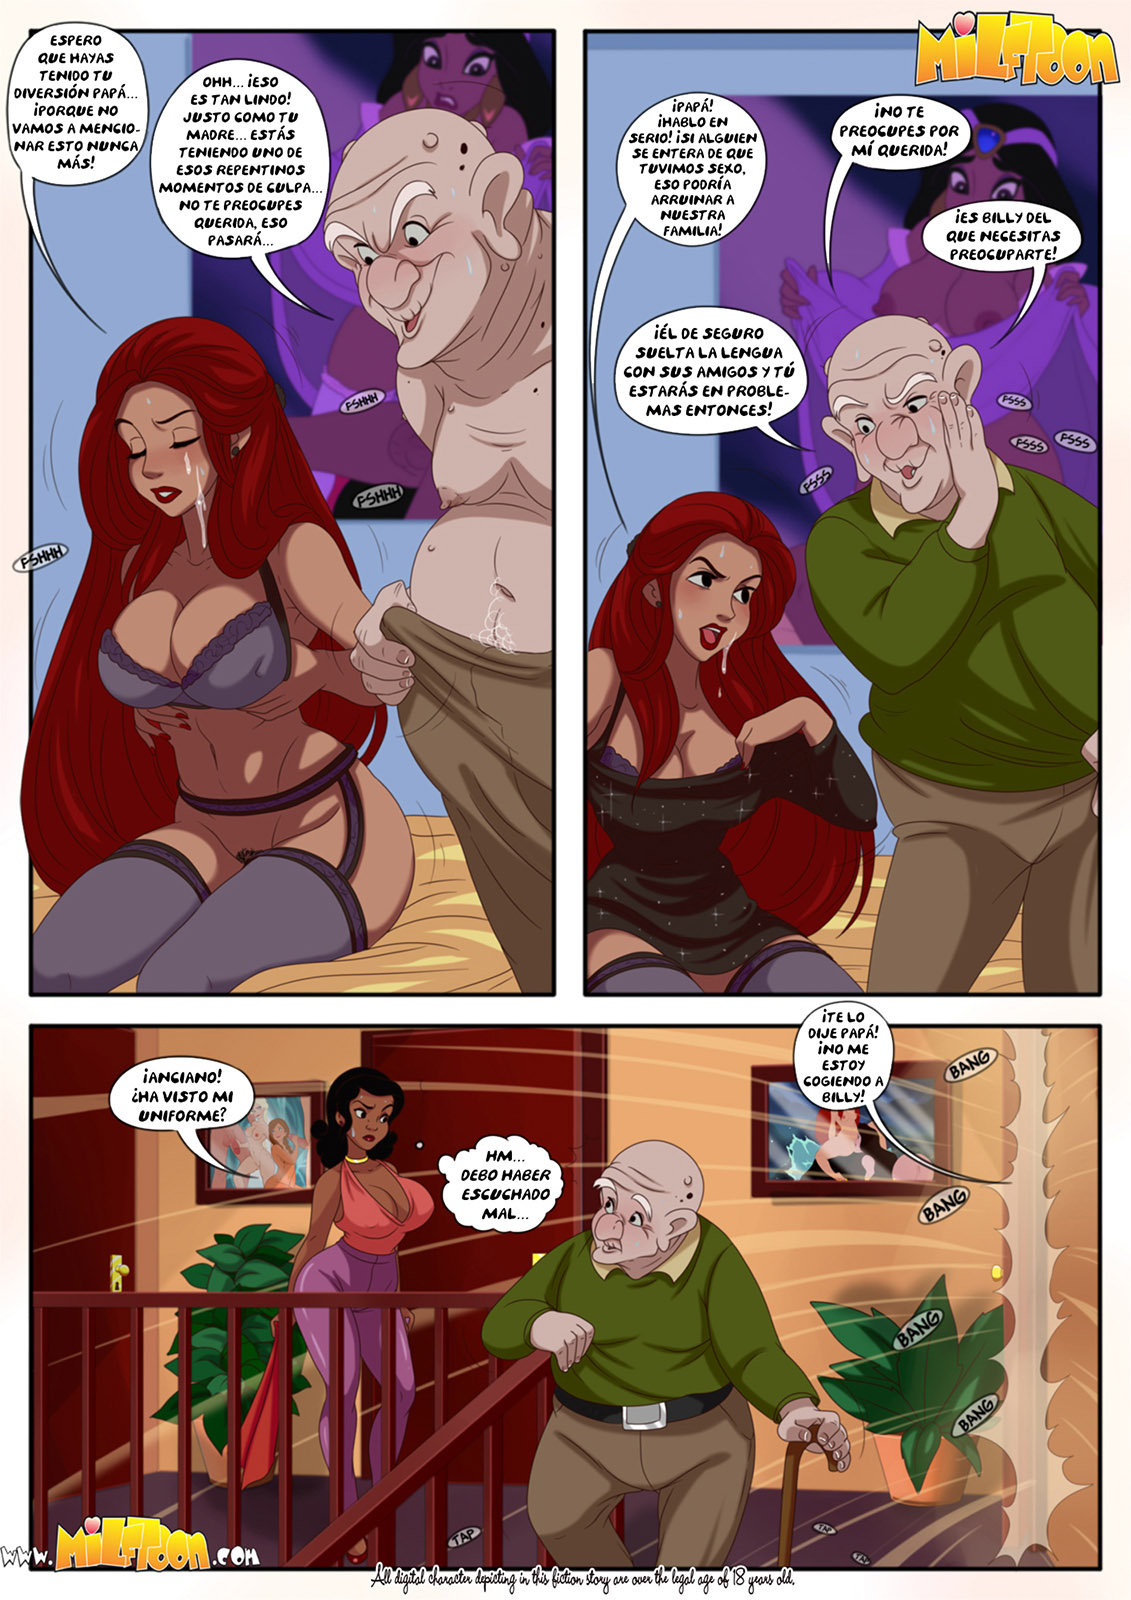 The MILFTOONS parte 4